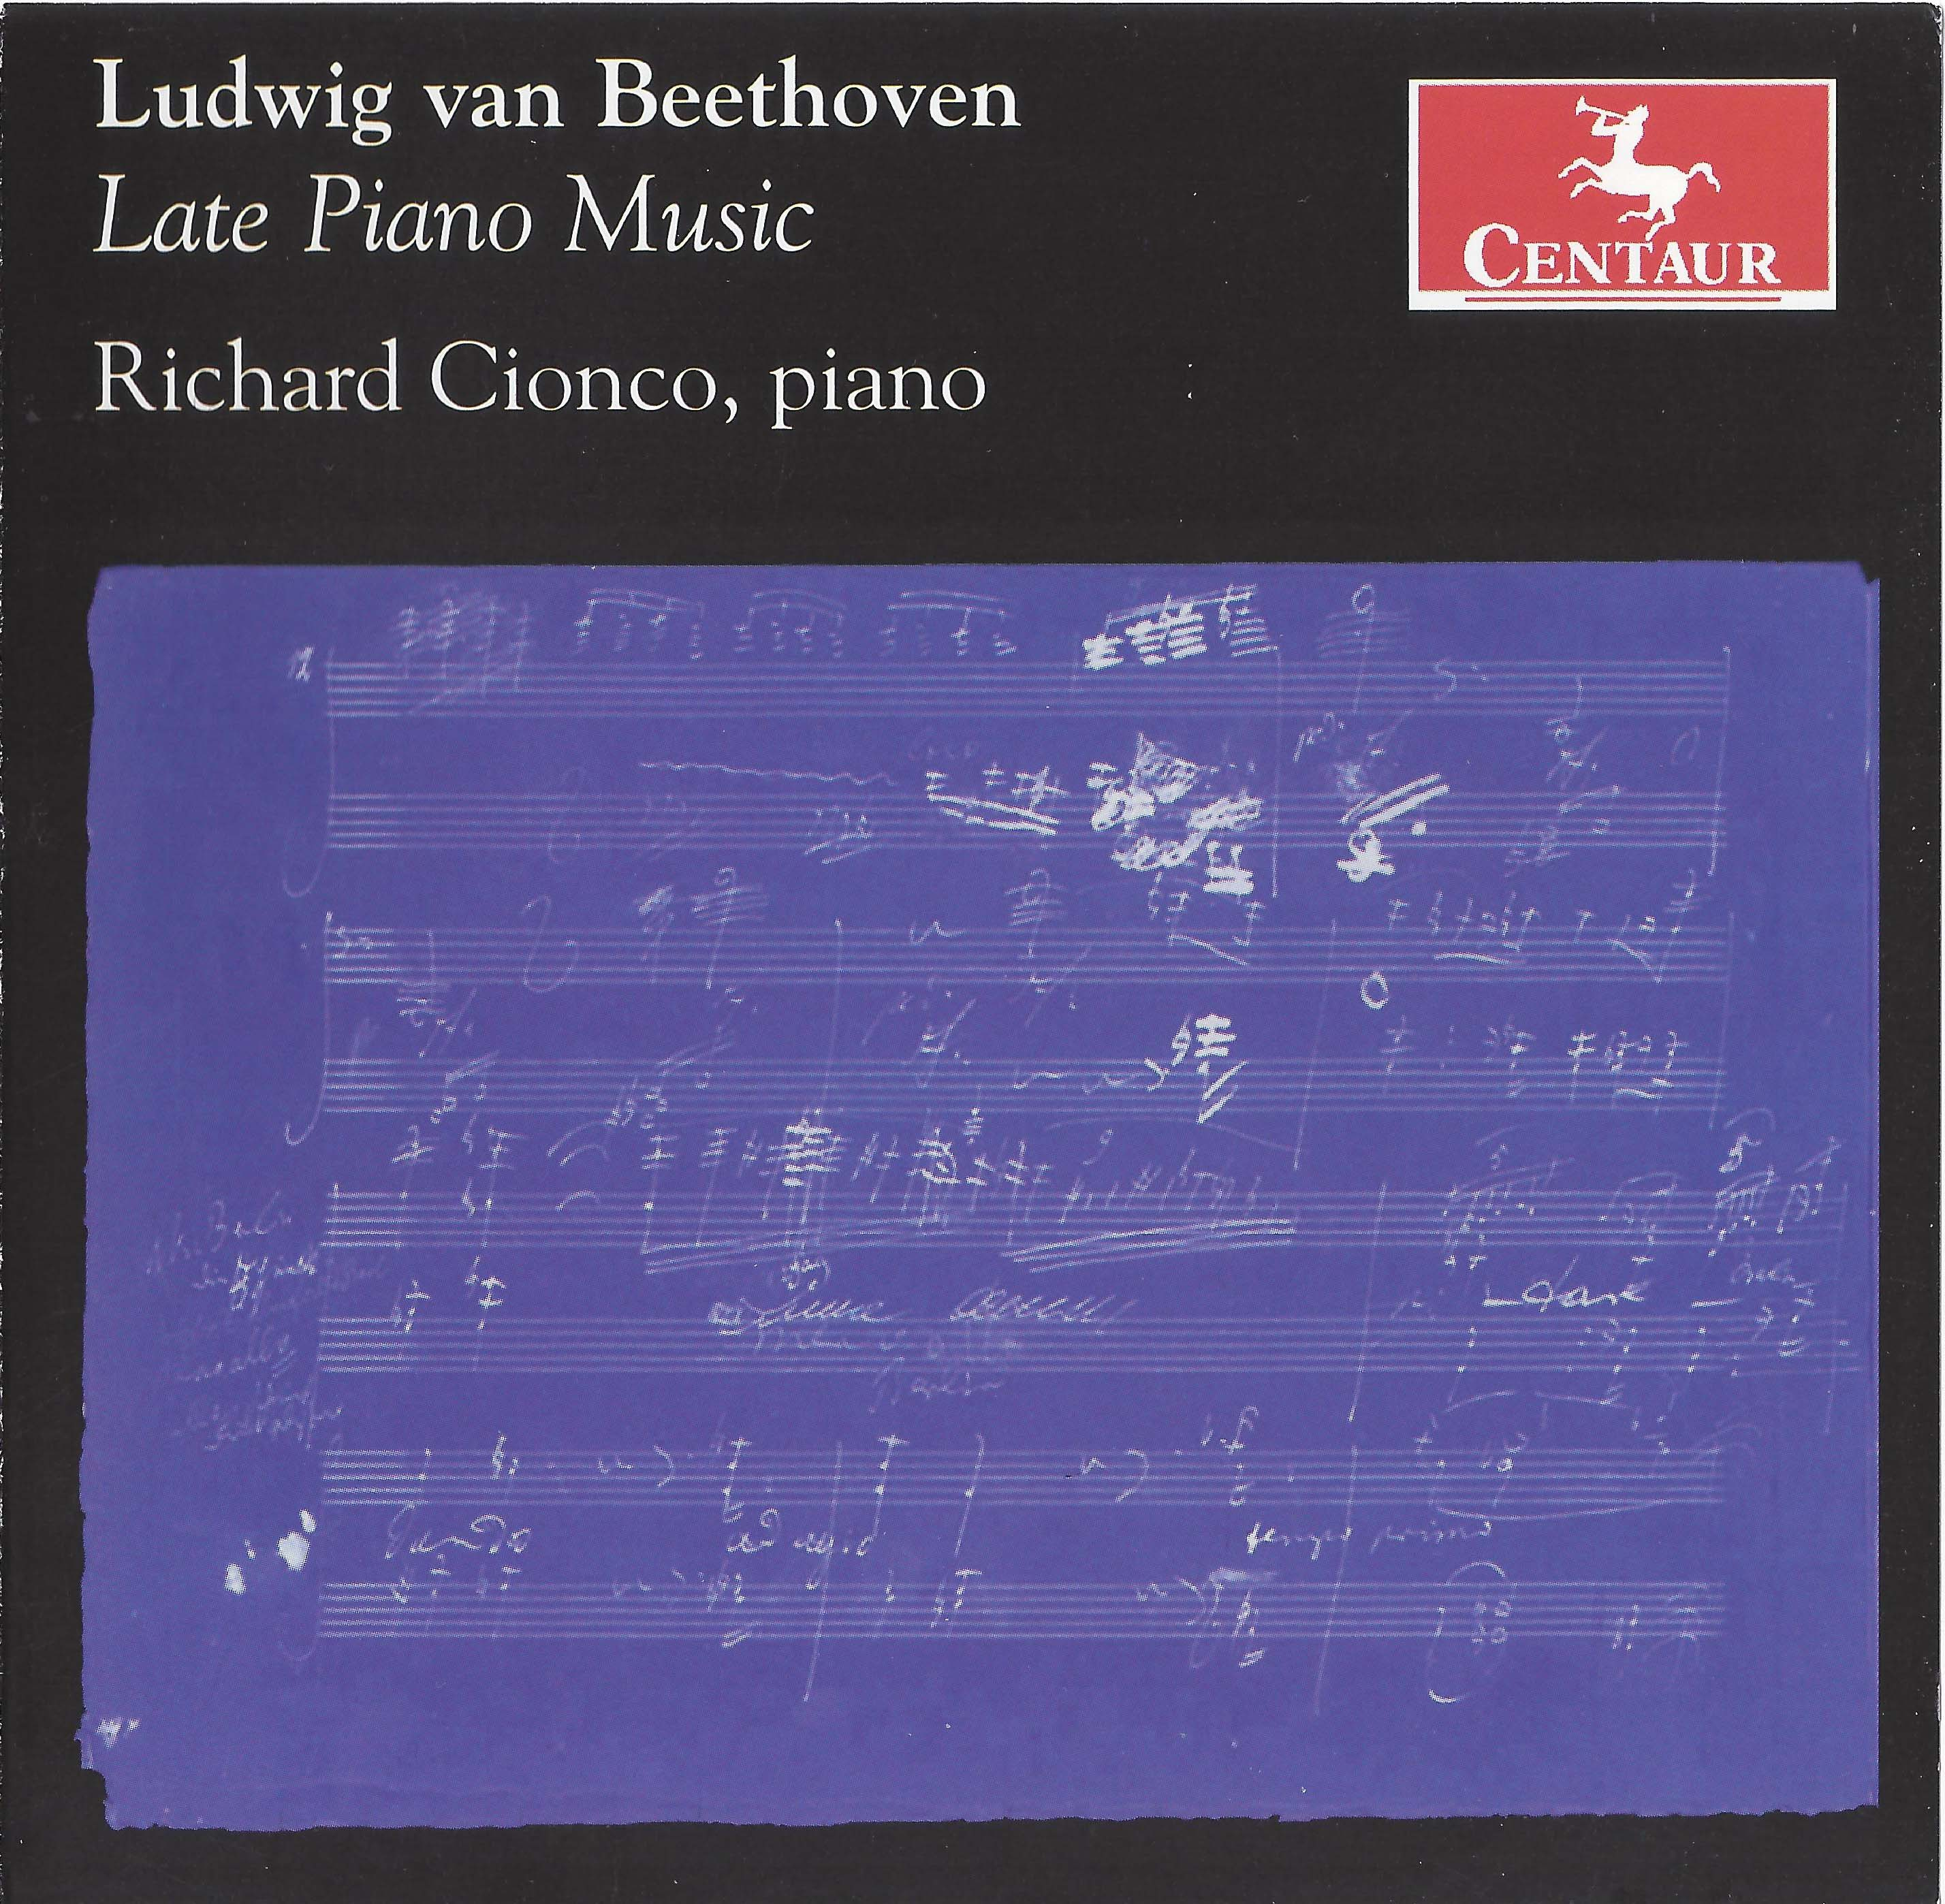 CRC 3235 Ludwig van Beethoven: Late Piano Music